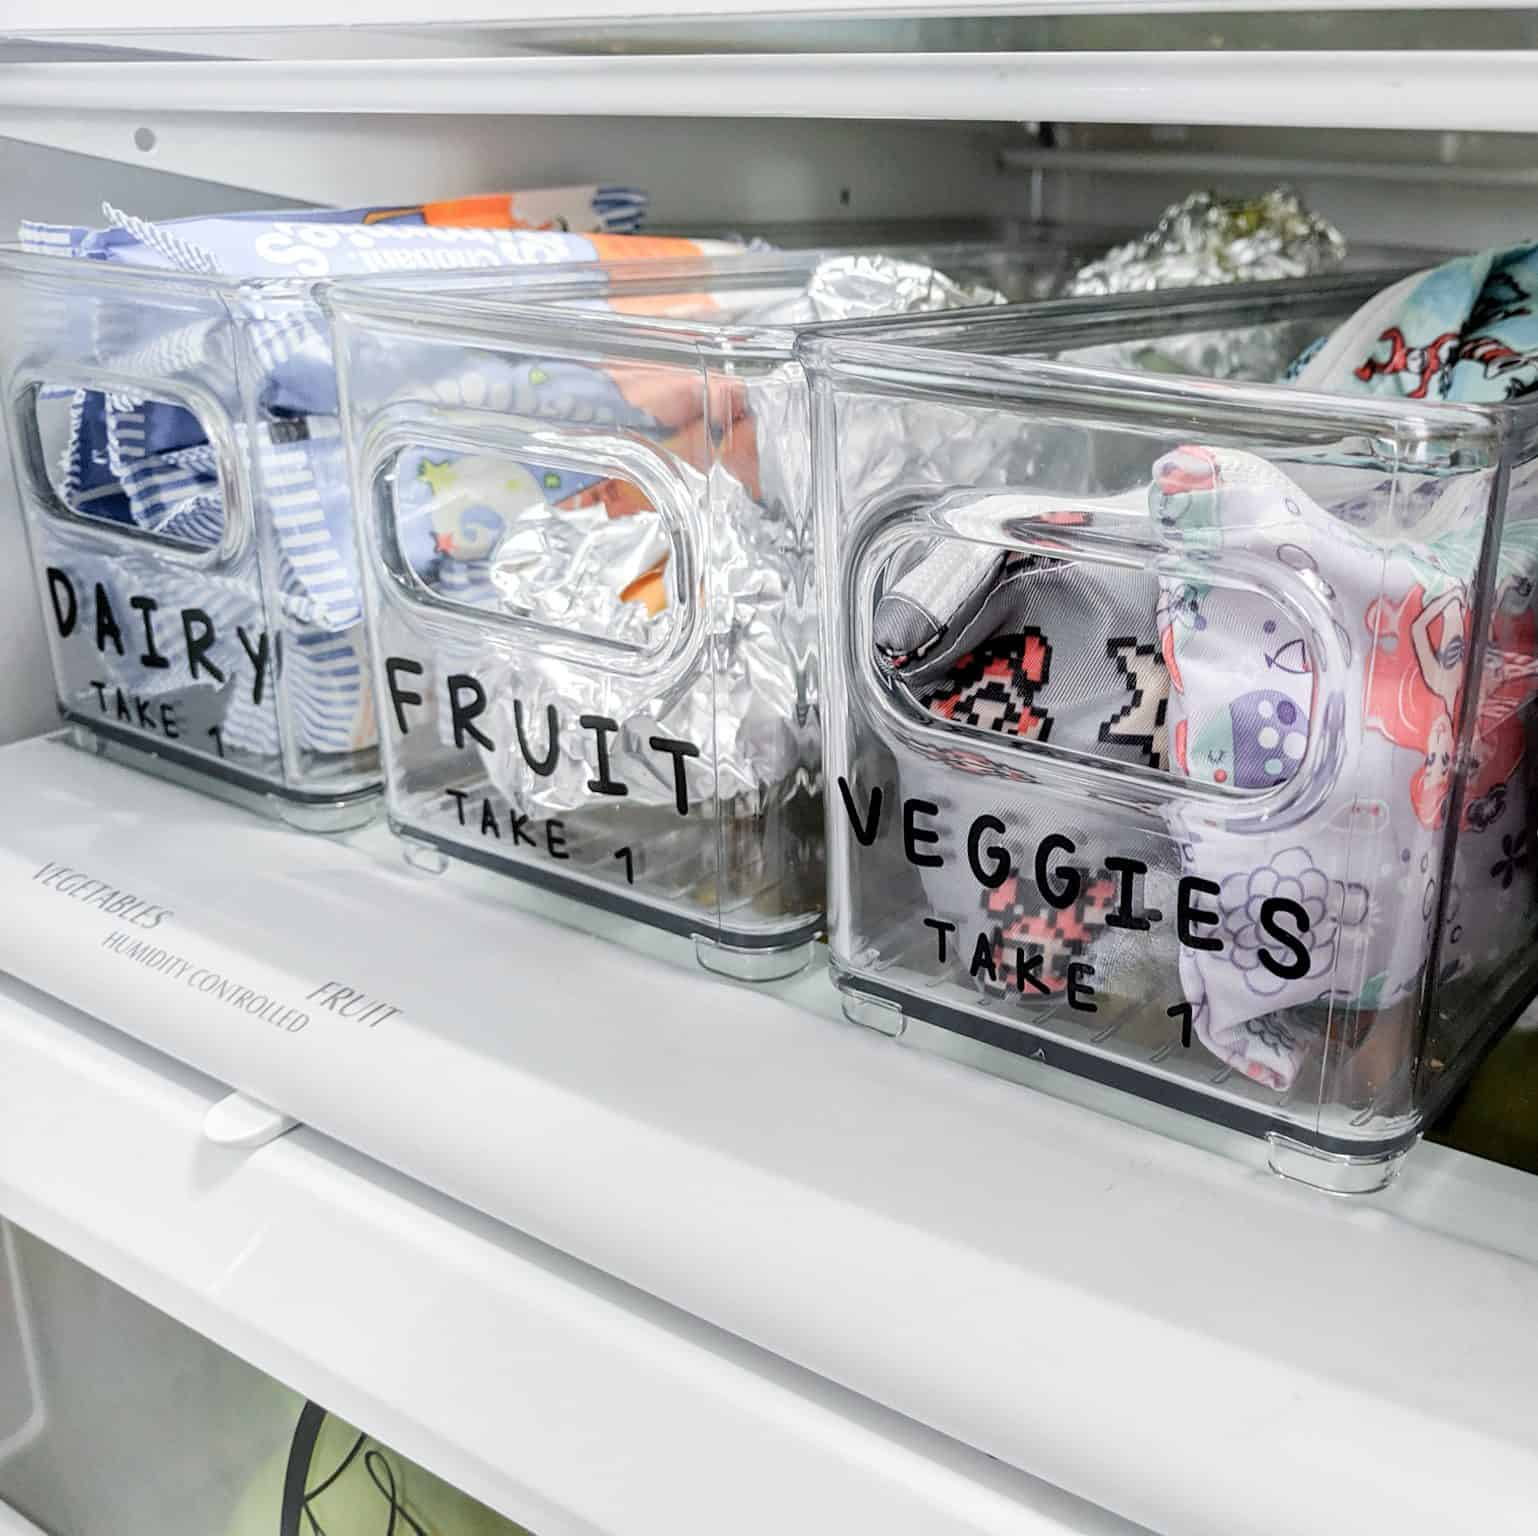 Packing lunches is no fun, but with this simple system, it can be quick and easy.